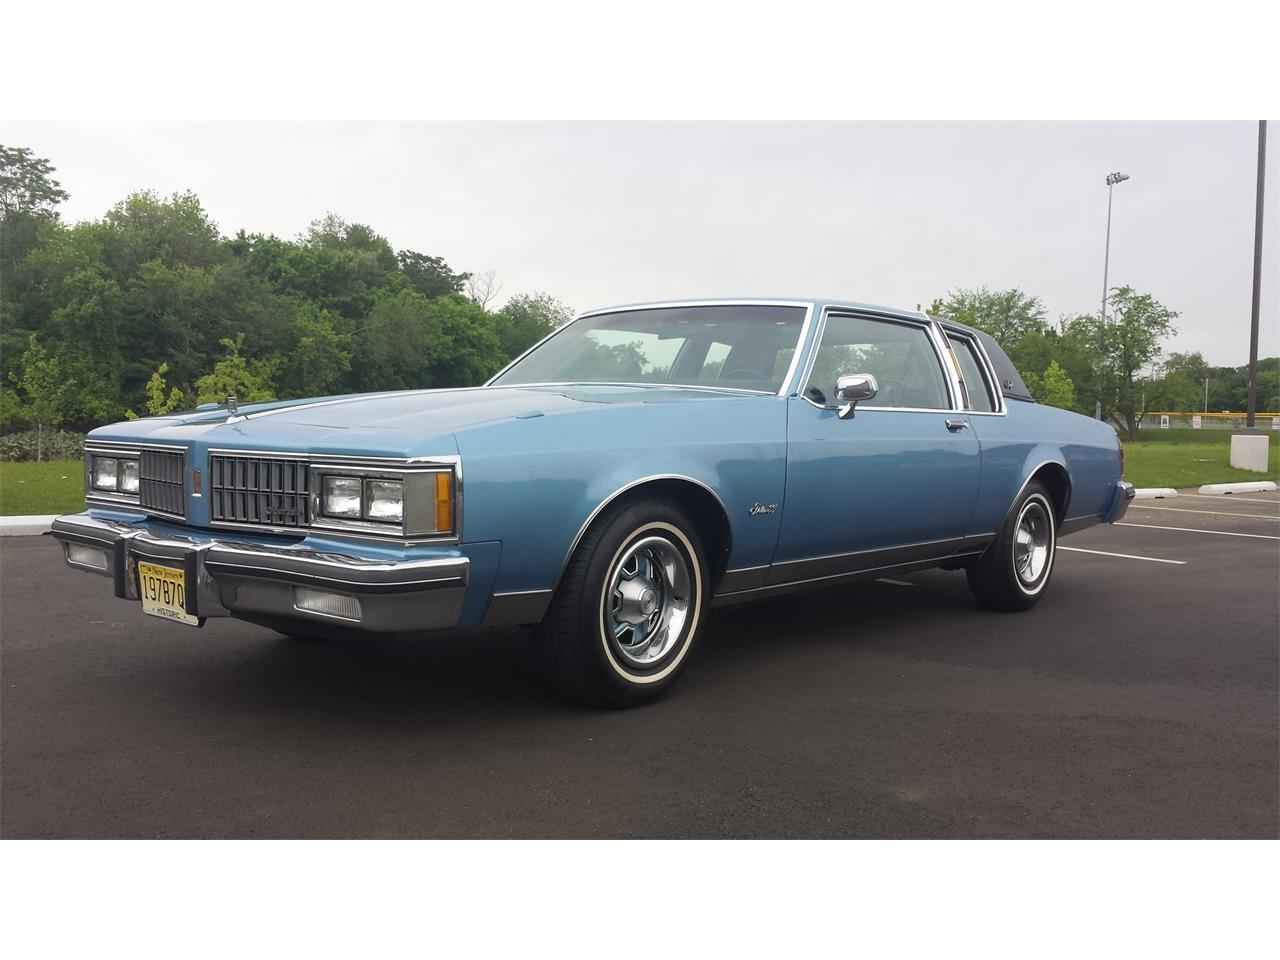 Large Picture of 1981 Oldsmobile Delta 88 Royale - $9,750.00 Offered by a Private Seller - Q7LZ